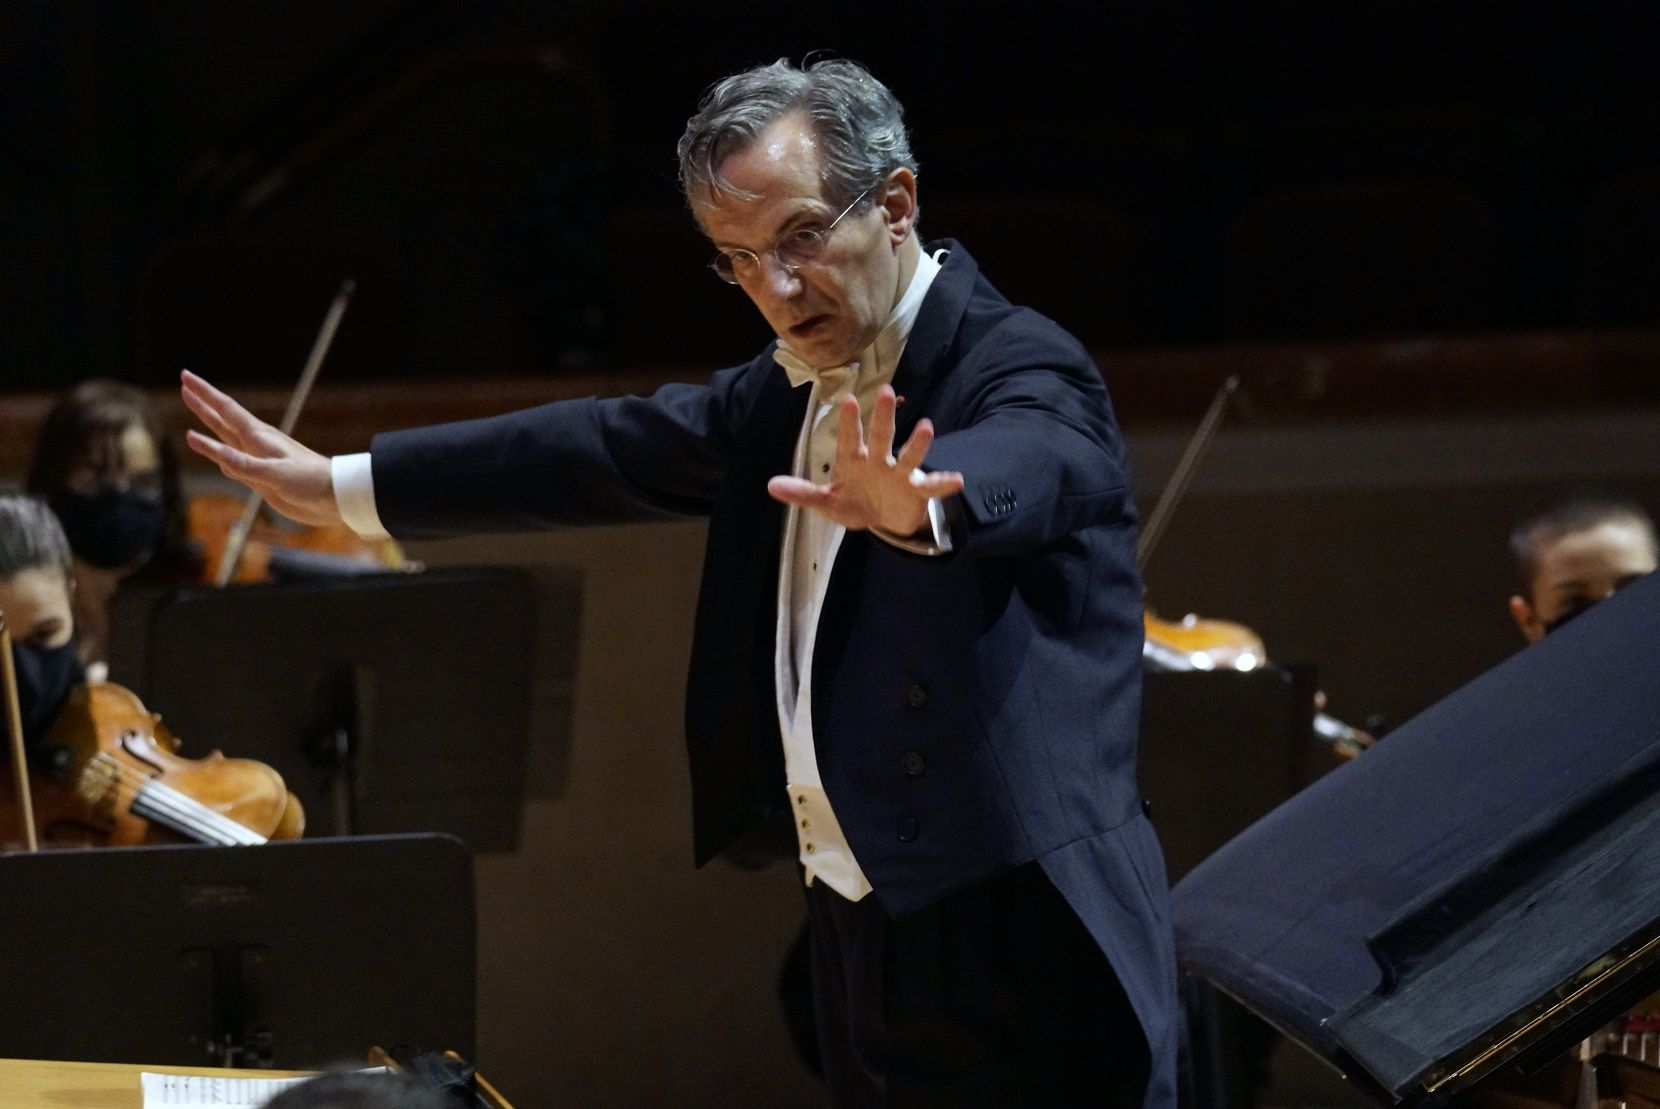 Fabio Luisi conducts the DSO on Jan. 28